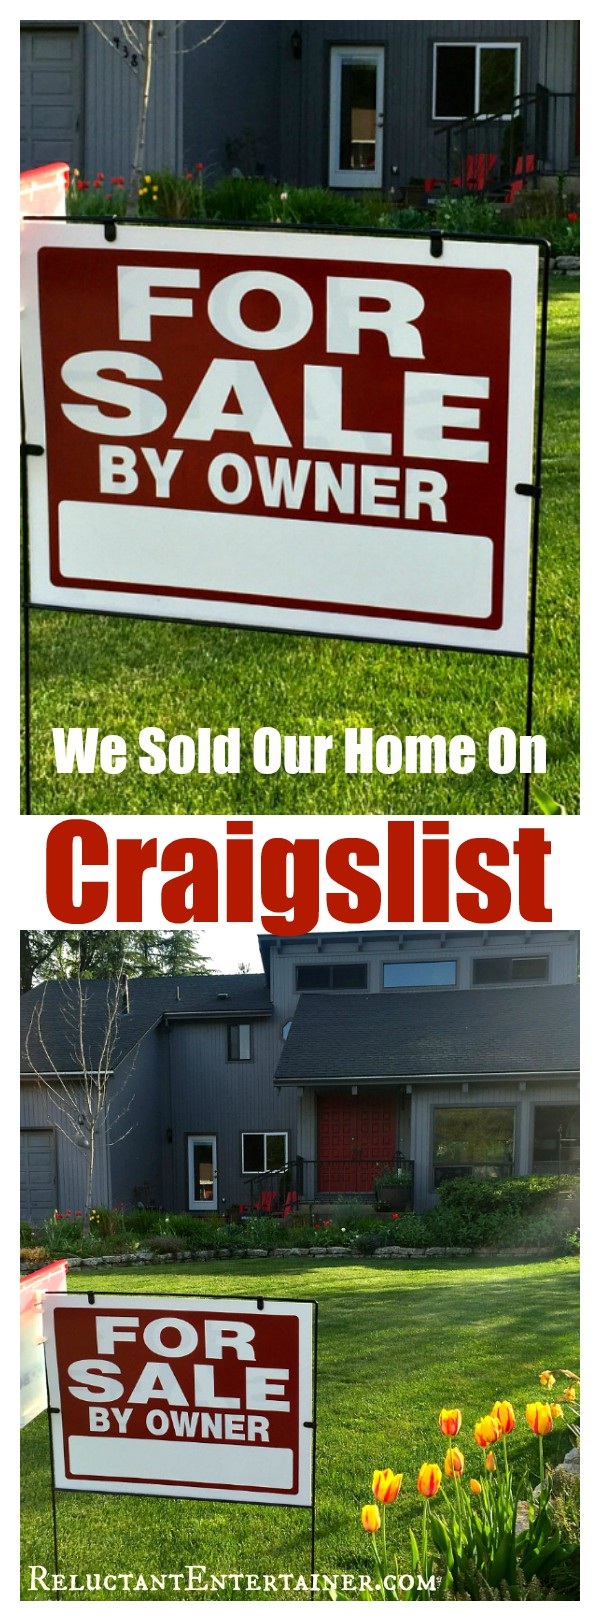 We Sold Our Home on Craigslist - Reluctant Entertainer